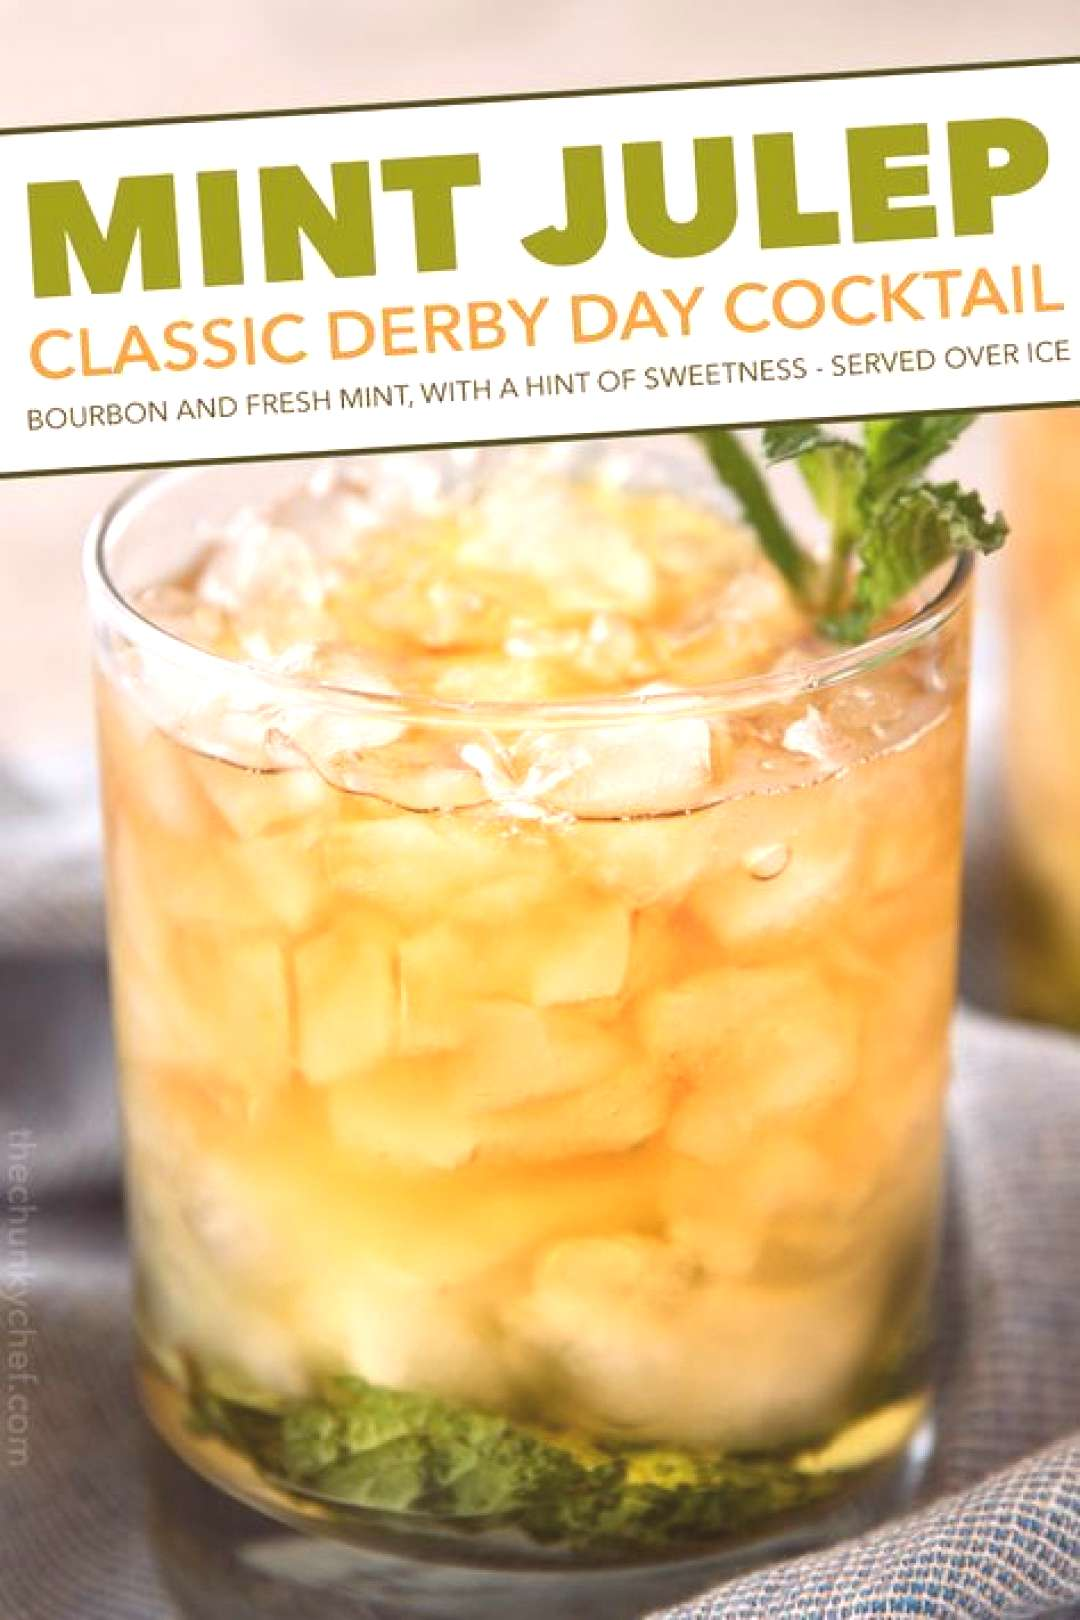 This Southern mint julep recipe is pretty close to the iconic Derby Day cocktail made with simple s